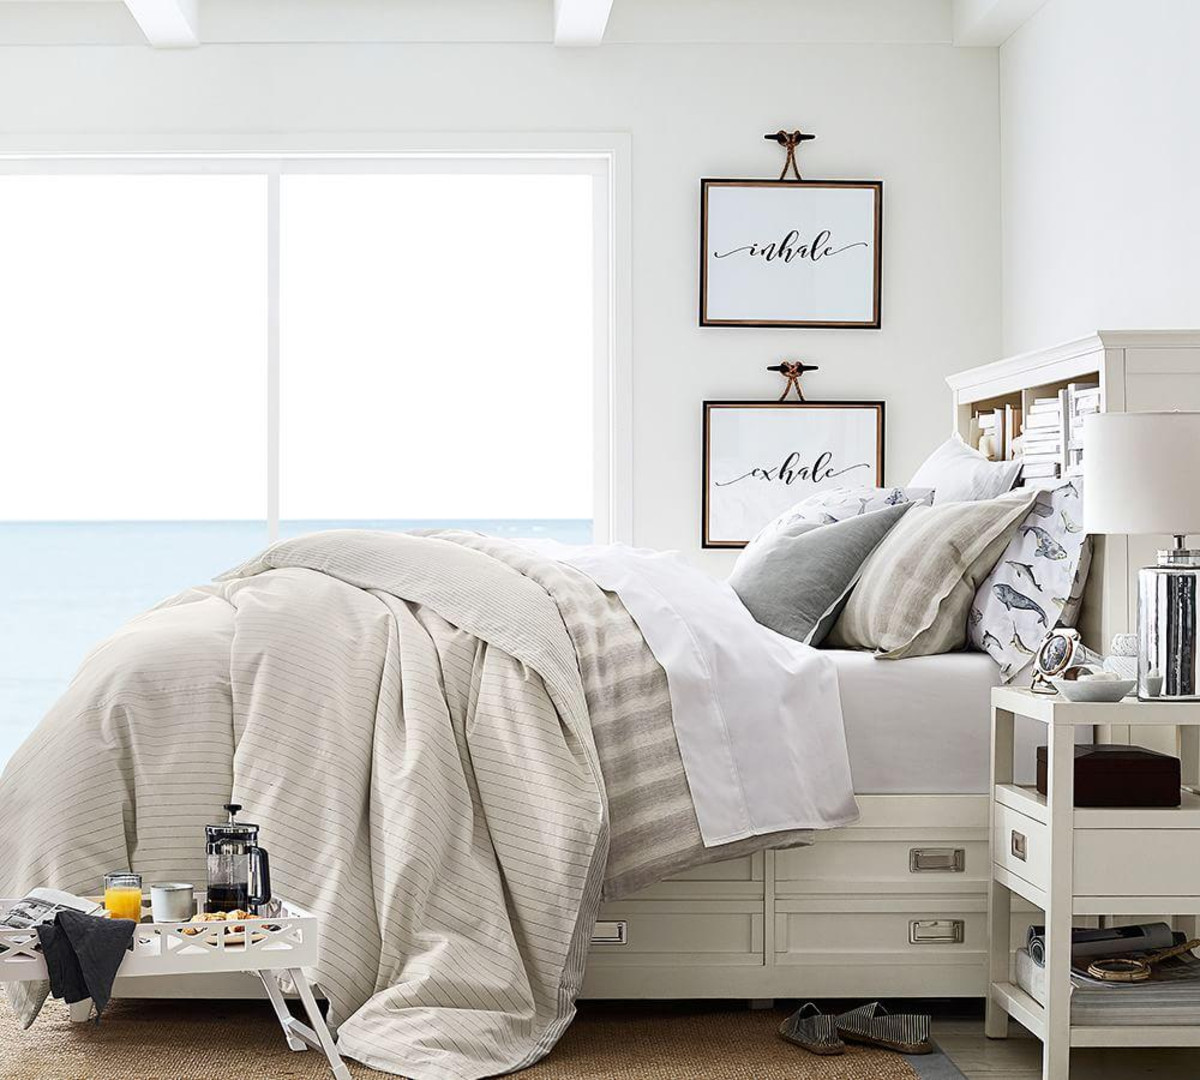 jamie stripe linen cotton duvet cover sham flax pottery barn media accent table amp wells chair white slim side silver metal pine night stand black and nest tables pier ornaments